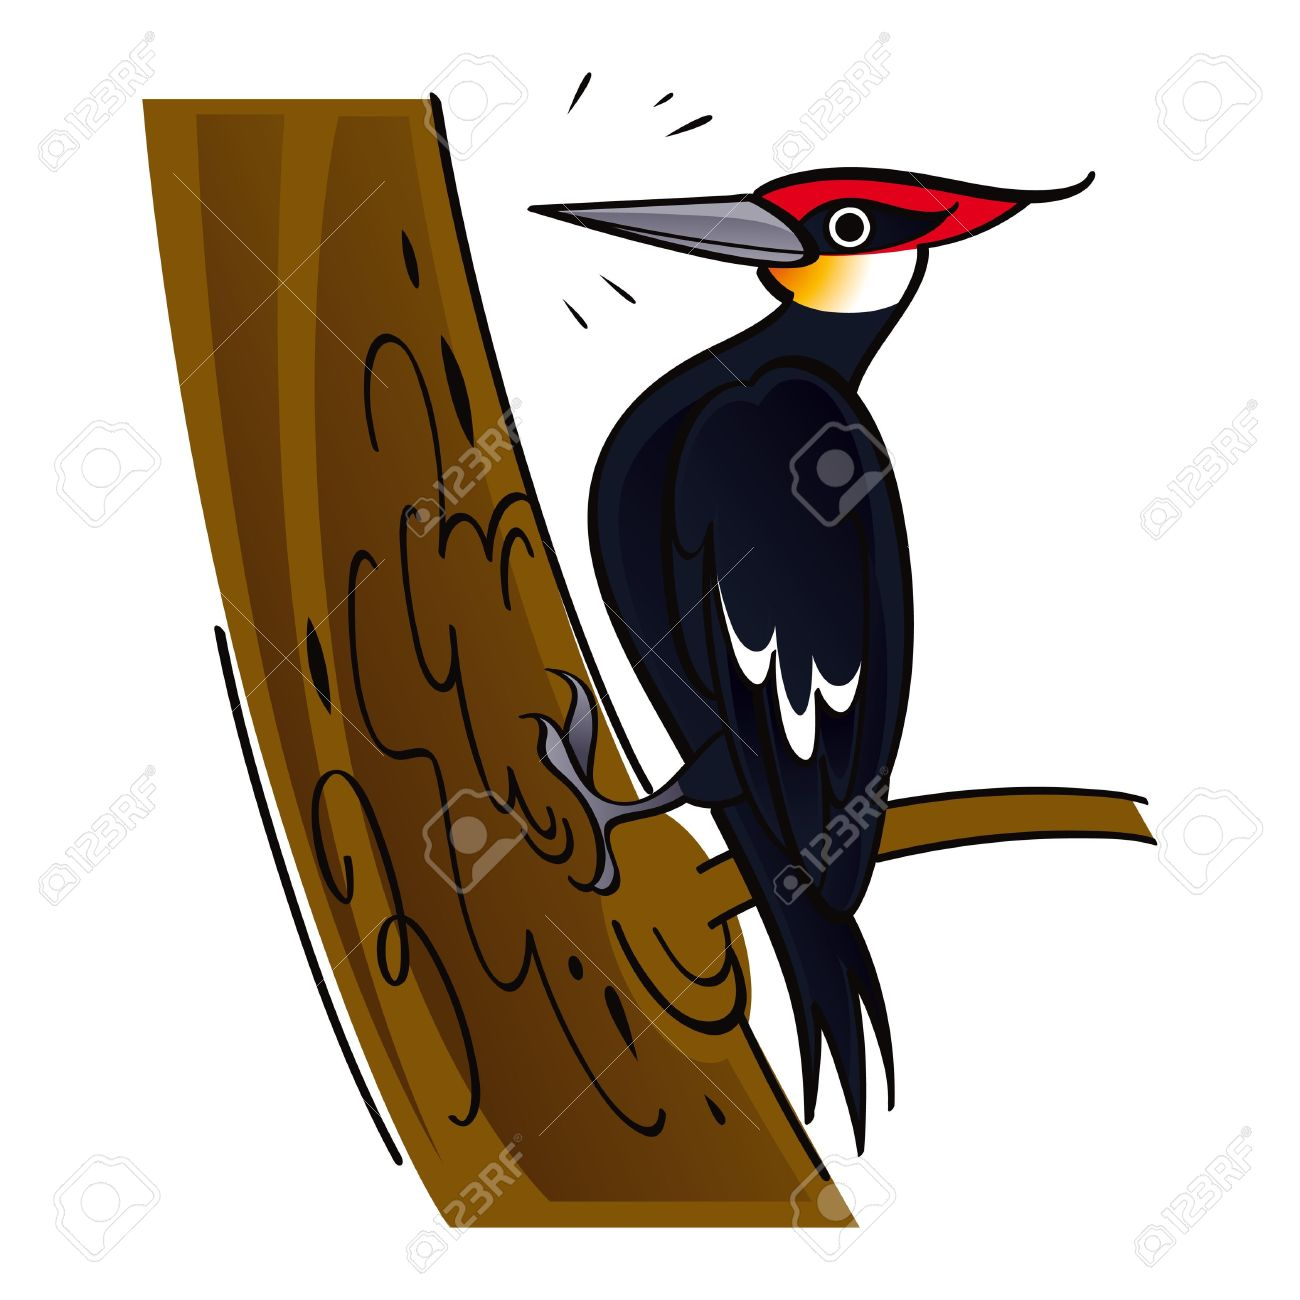 Woodpecker bird clipart 20 free Cliparts | Download images ...